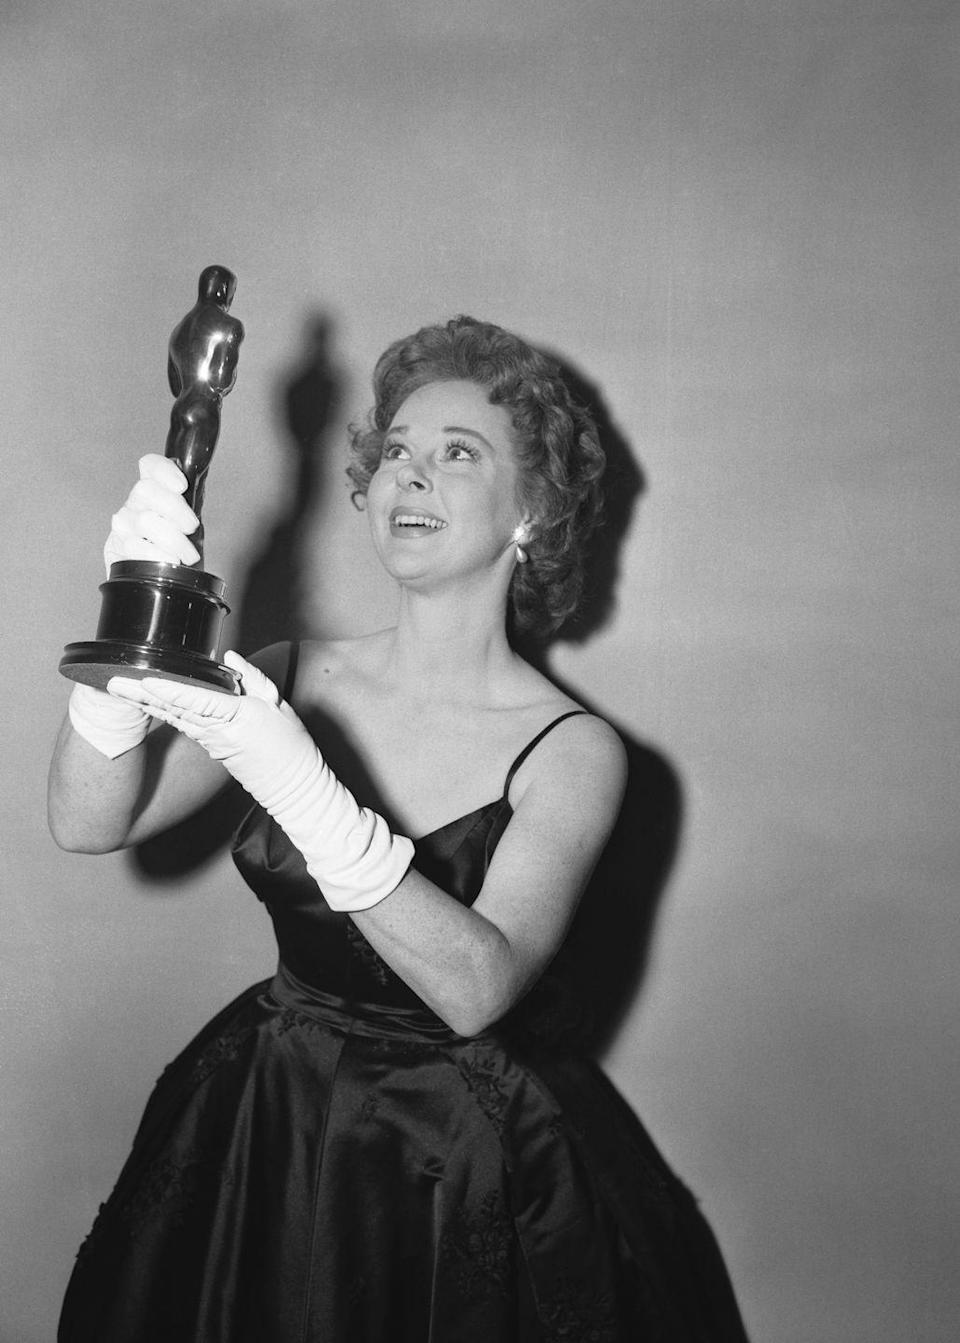 <p>Susan wore a black satin gown with spaghetti straps and elegant white gloves. She won the Best Actress Oscar for her performance in <em>I Want to Live!</em></p>